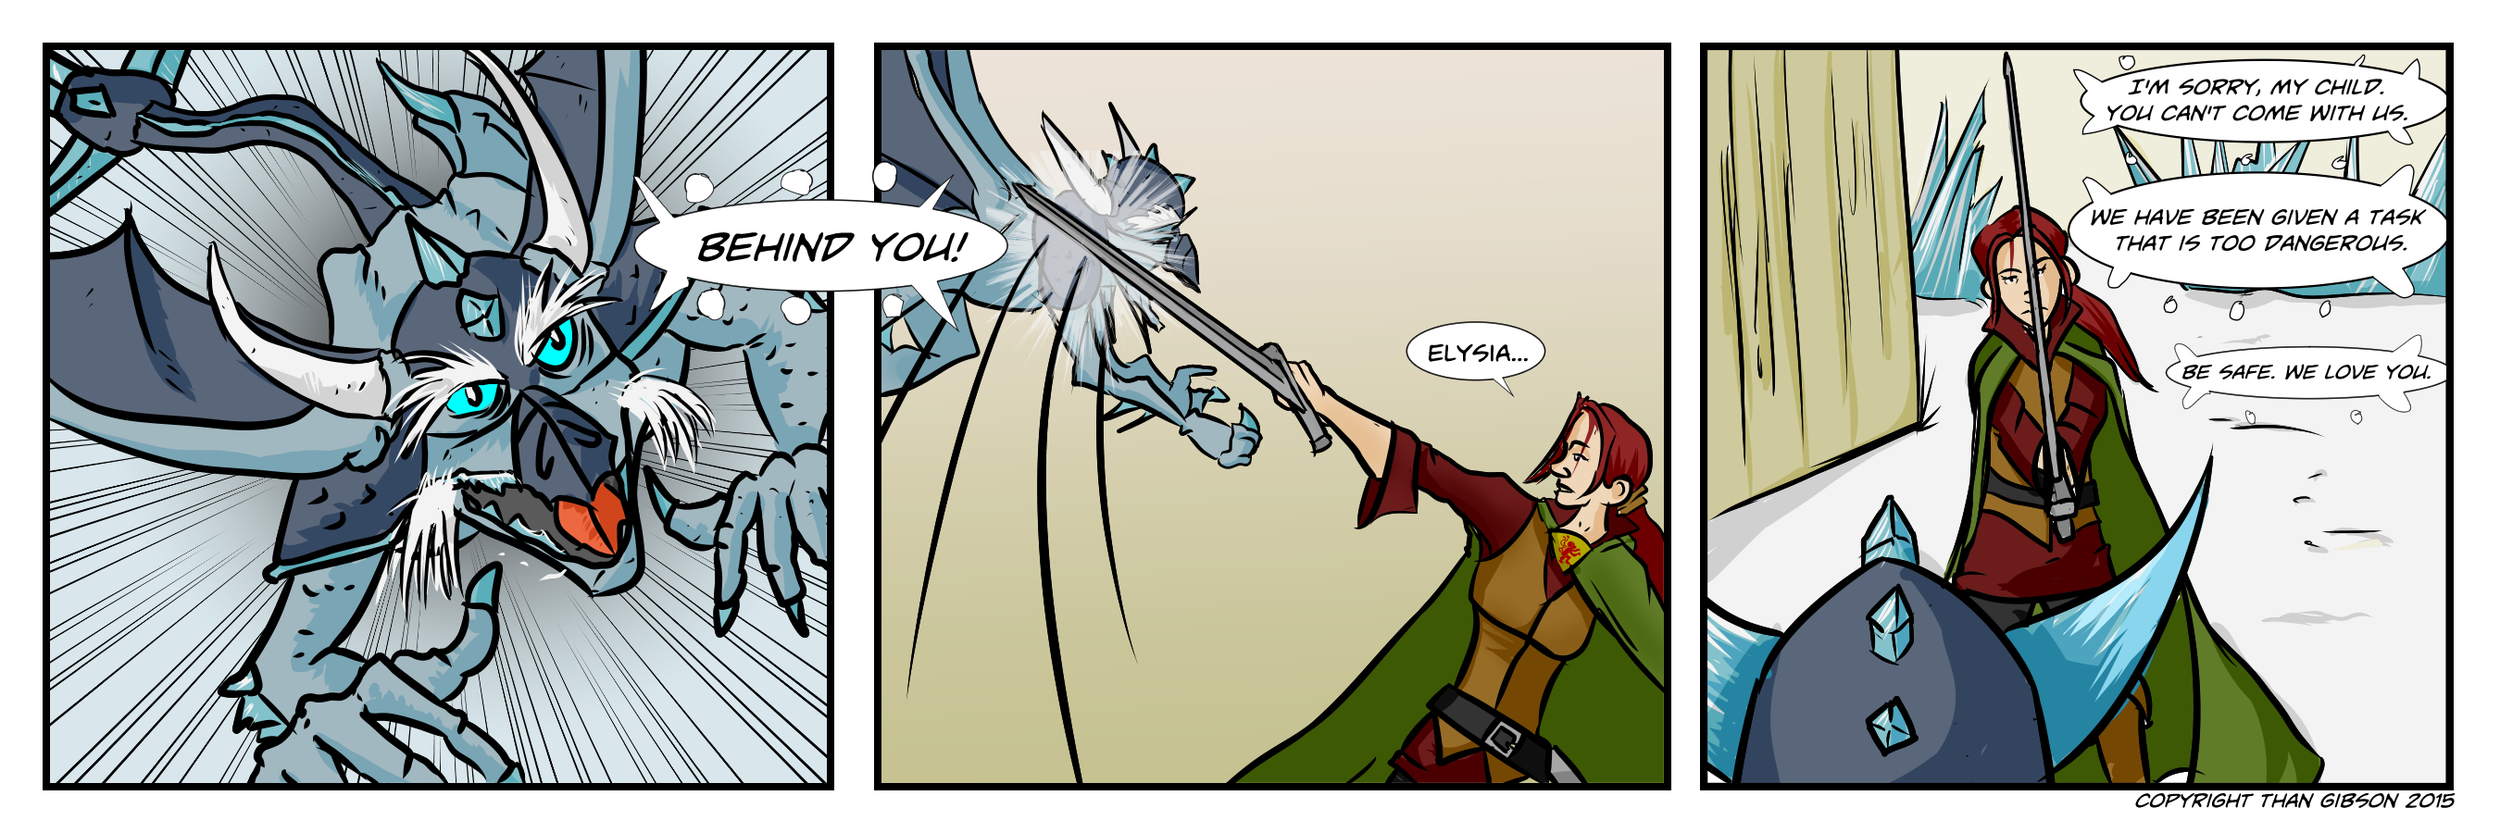 CHRONICLE: A CHRONICLE OF THIEVES - CHAPTER 2, STRIP 18